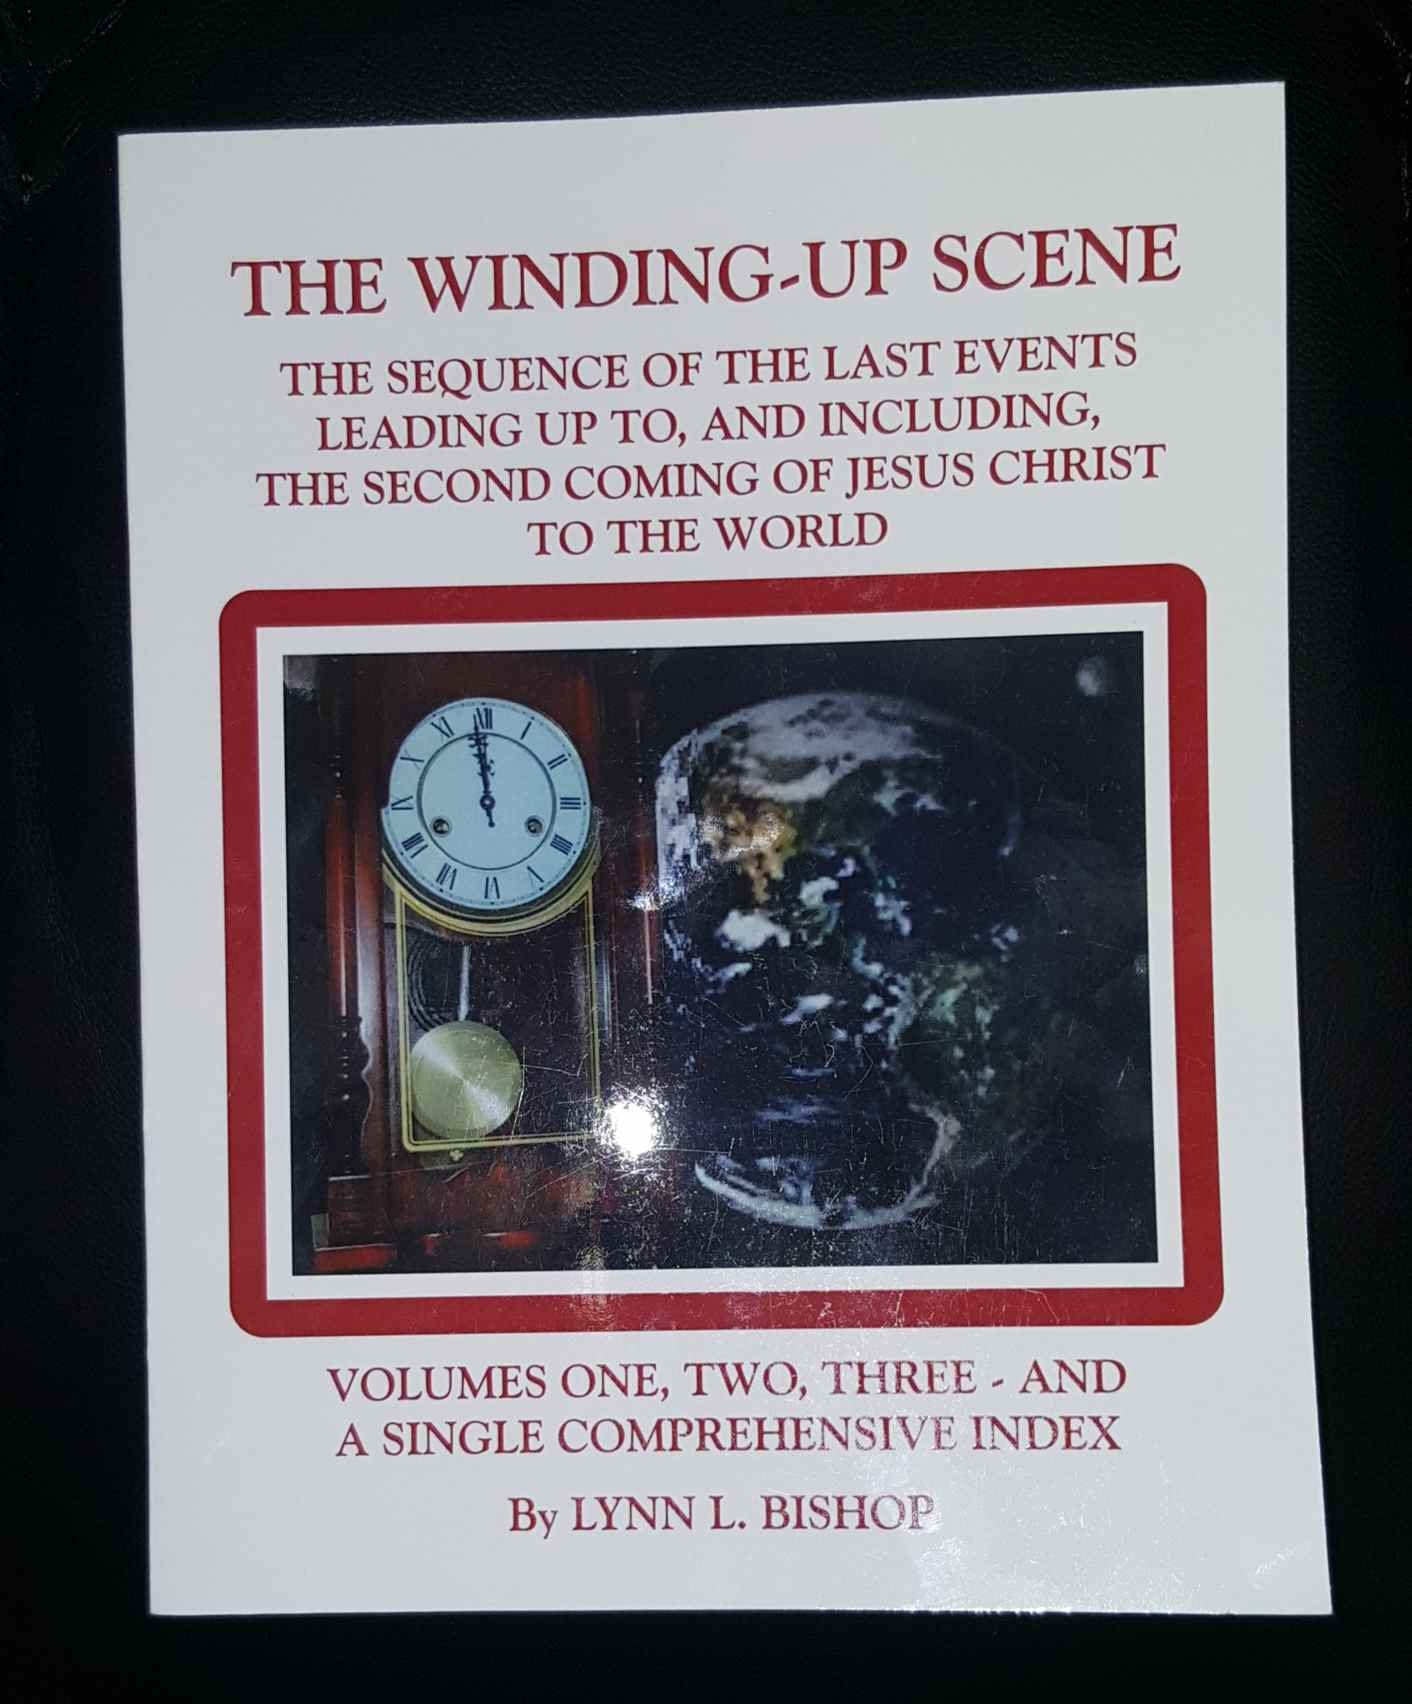 Image for The Winding-Up Scene (Volumes 1-3 Plus Comprehensive Index) - The Sequence of the Last Events Leading Up To, and Including, the Second Coming of Jesus Christ to the World